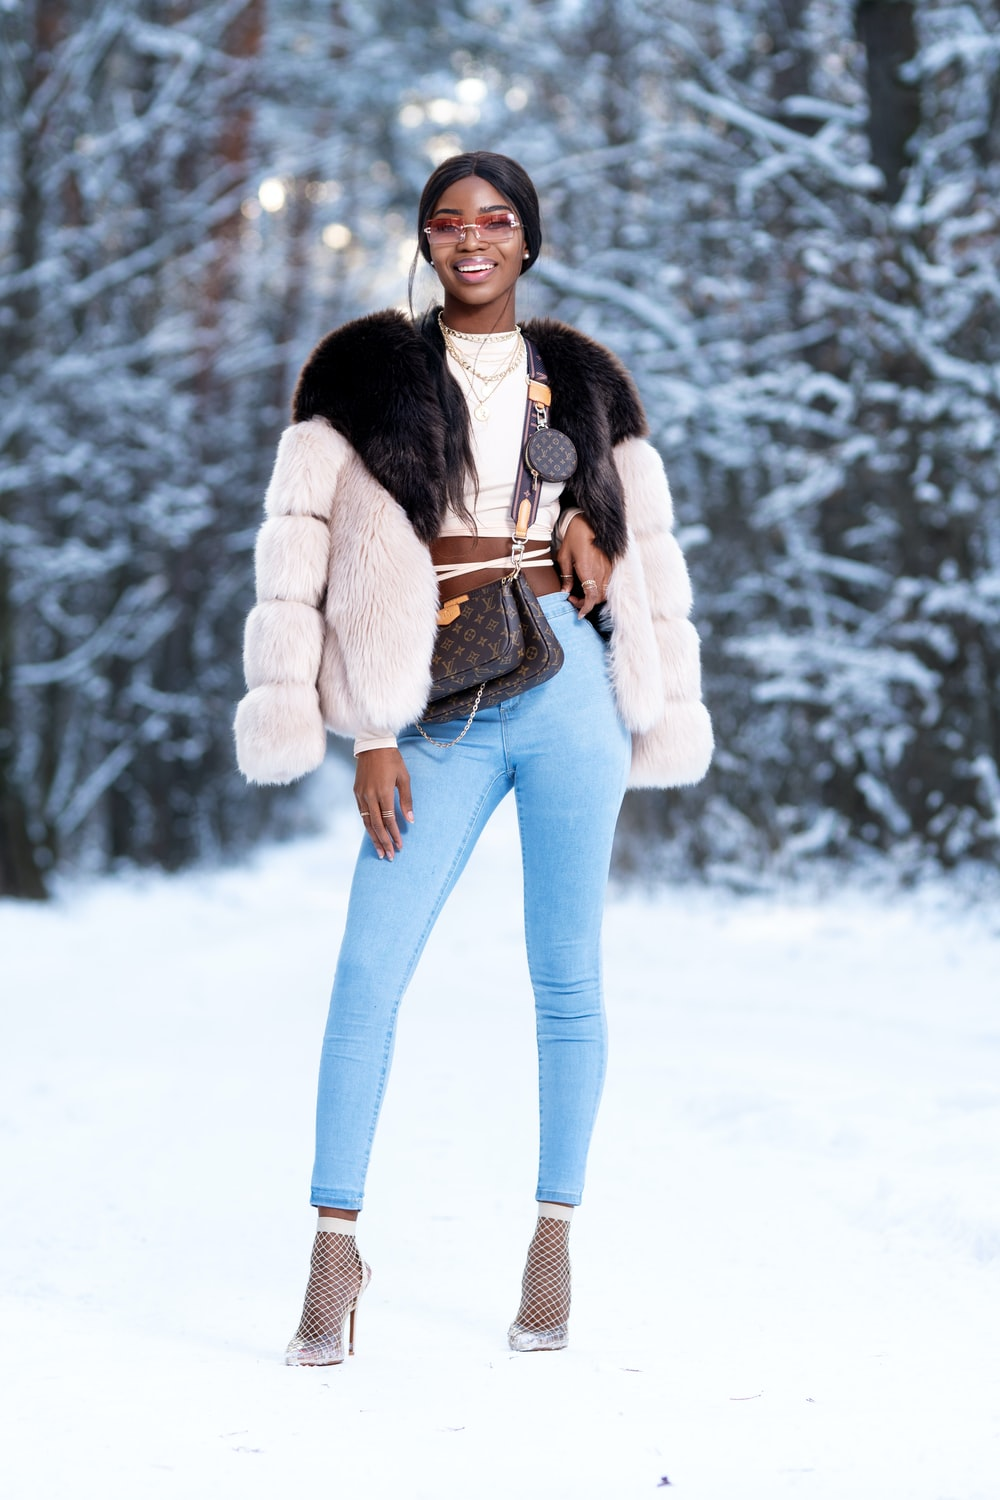 woman in white and black jacket and blue denim jeans standing on snow covered ground during